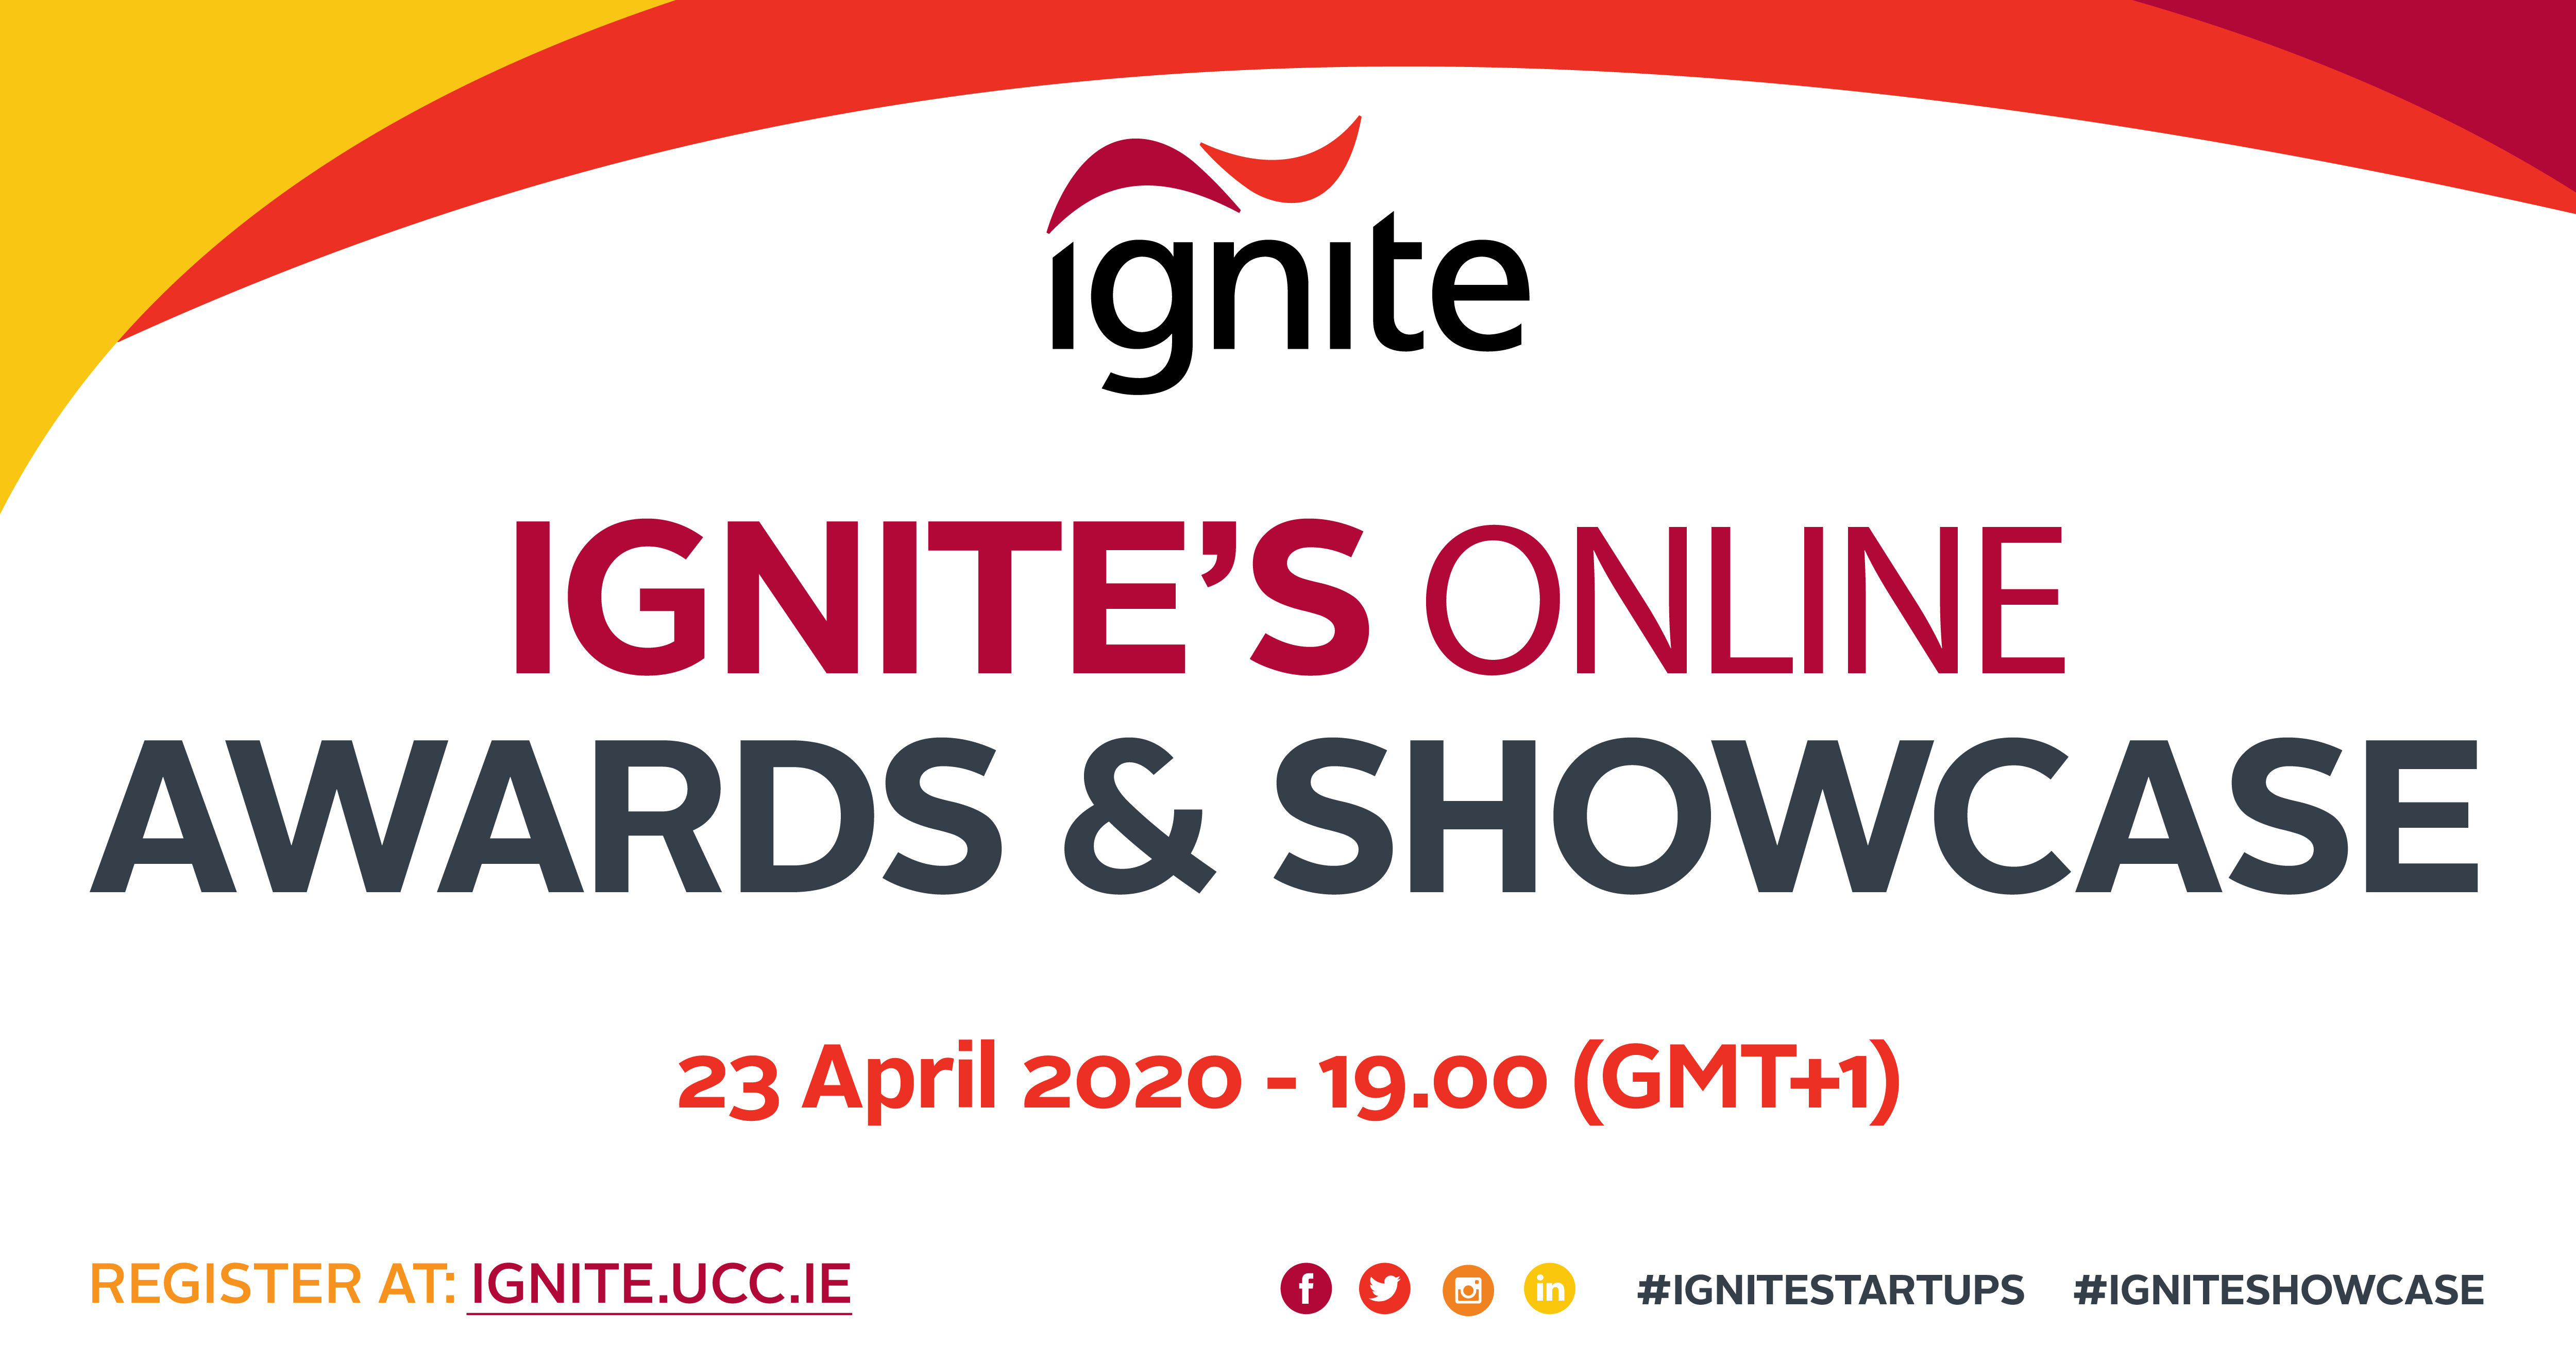 IGNITE's Online Awards and Showcase